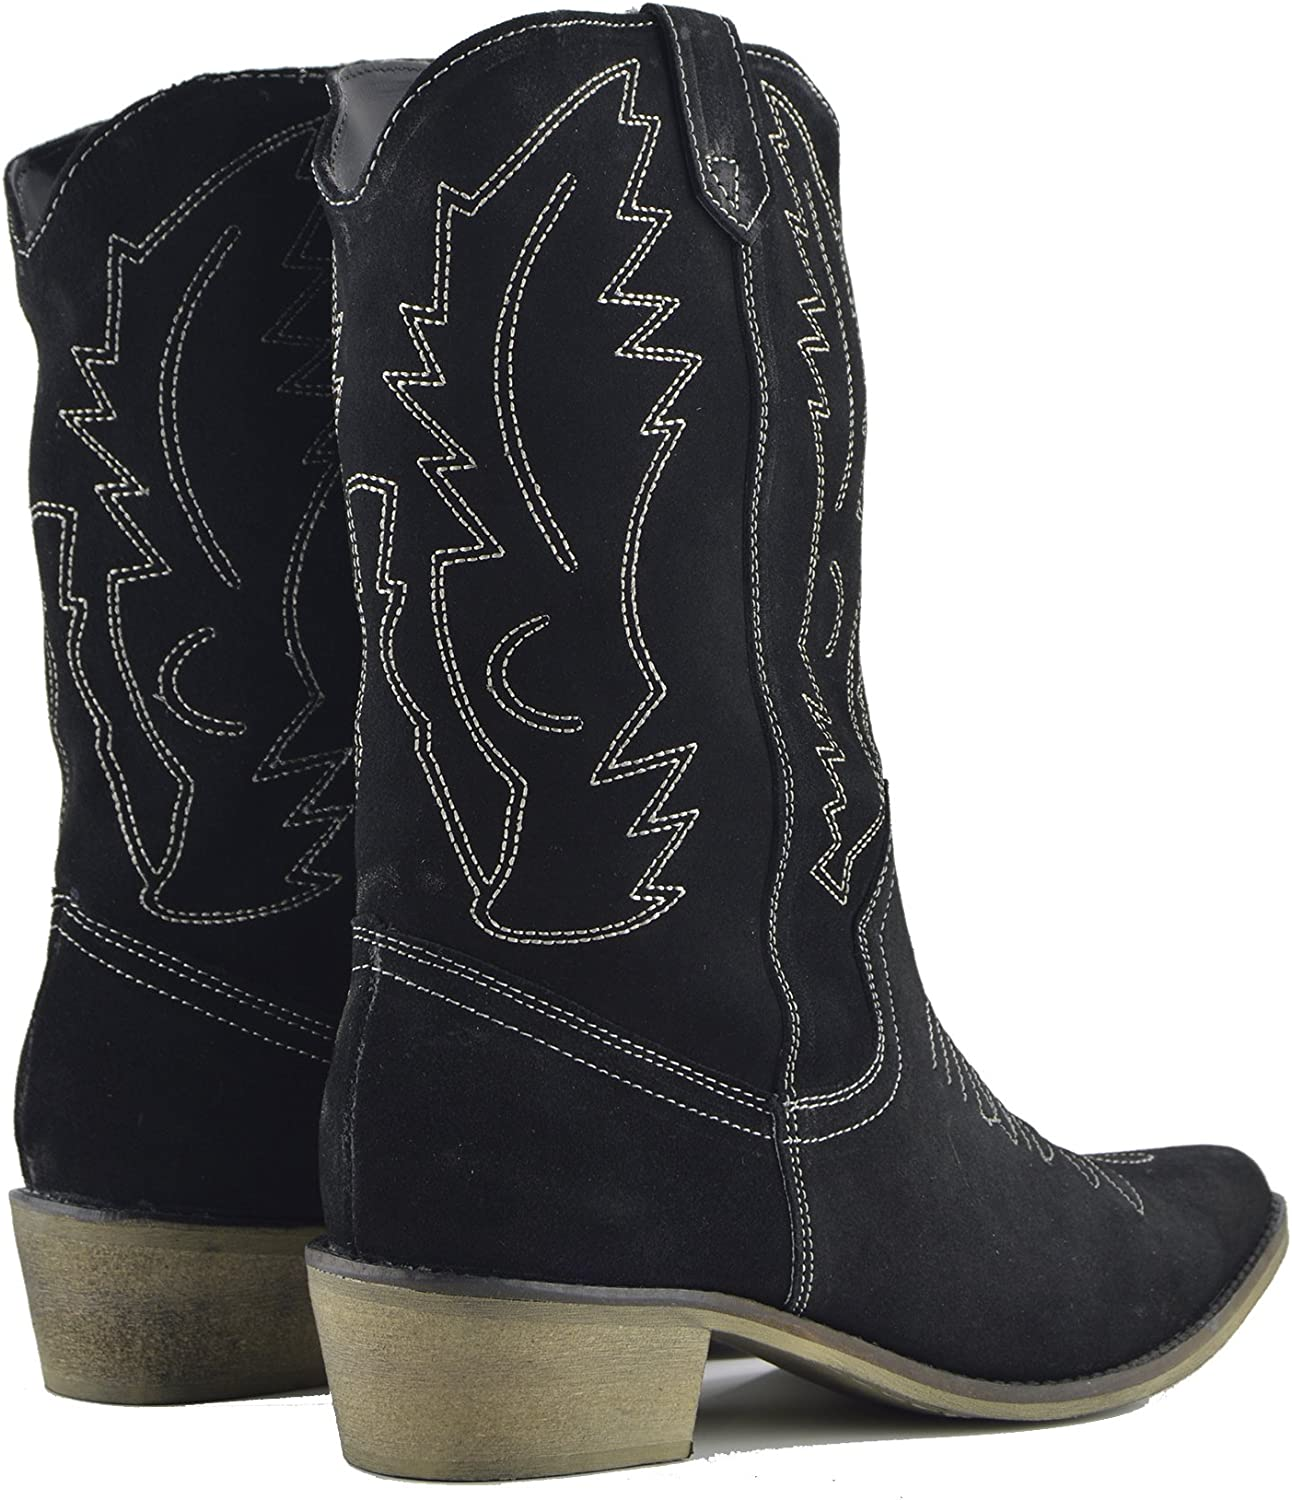 Women's Cowboy Boots Leather Western Wide Calf Cowgirl Shoes Low Heel UK Black Suede